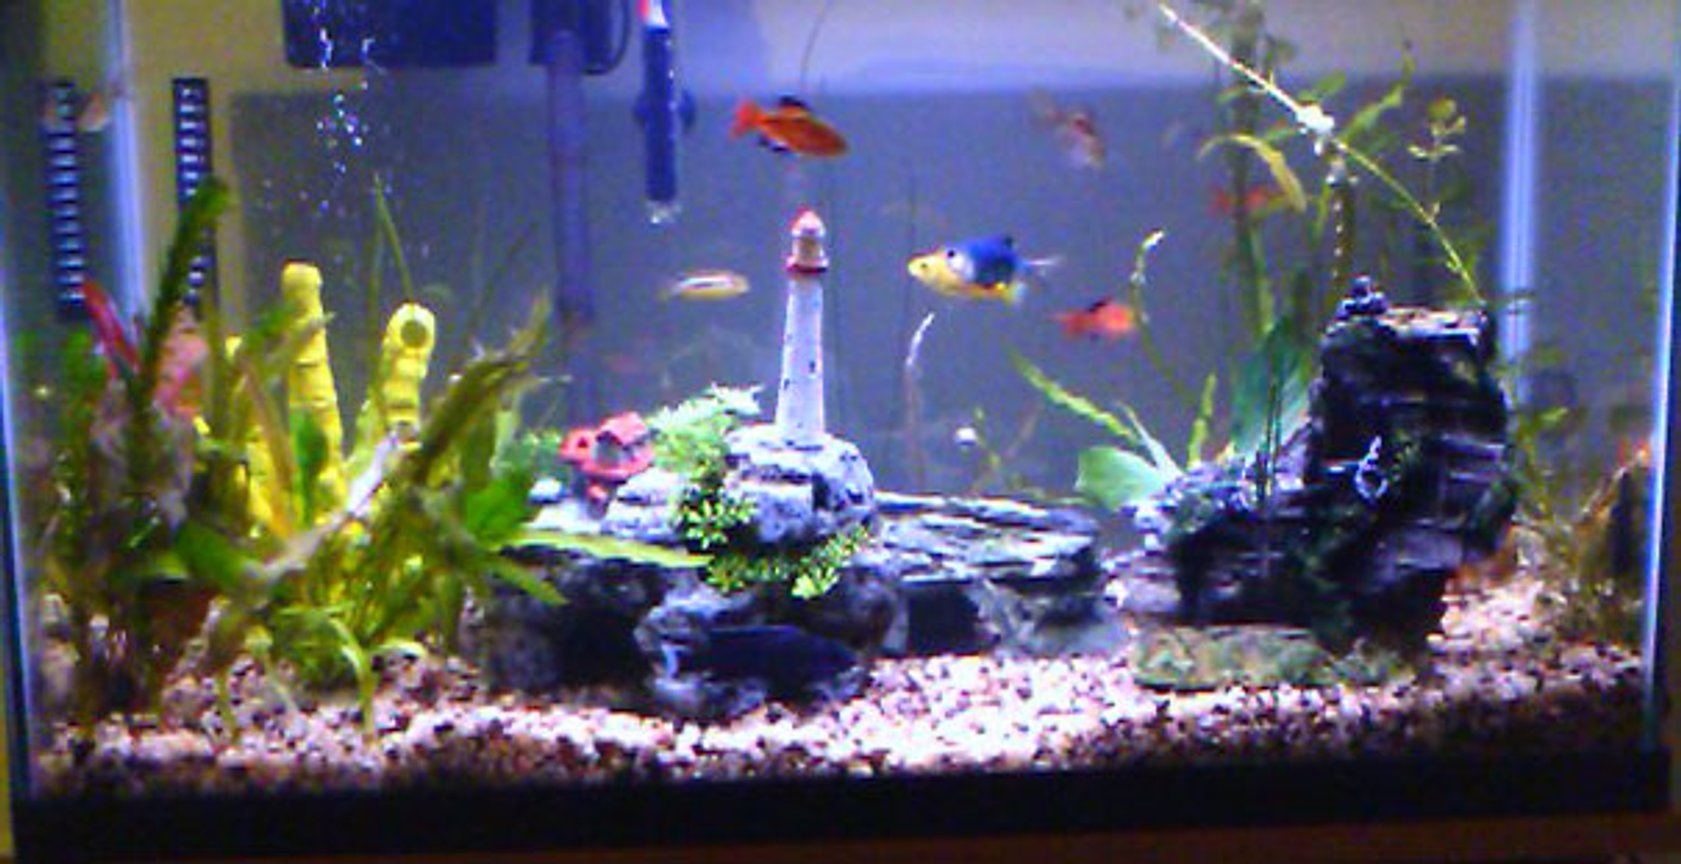 29 gallons freshwater fish tank (mostly fish and non-living decorations) - You can see it, no need to describe it.